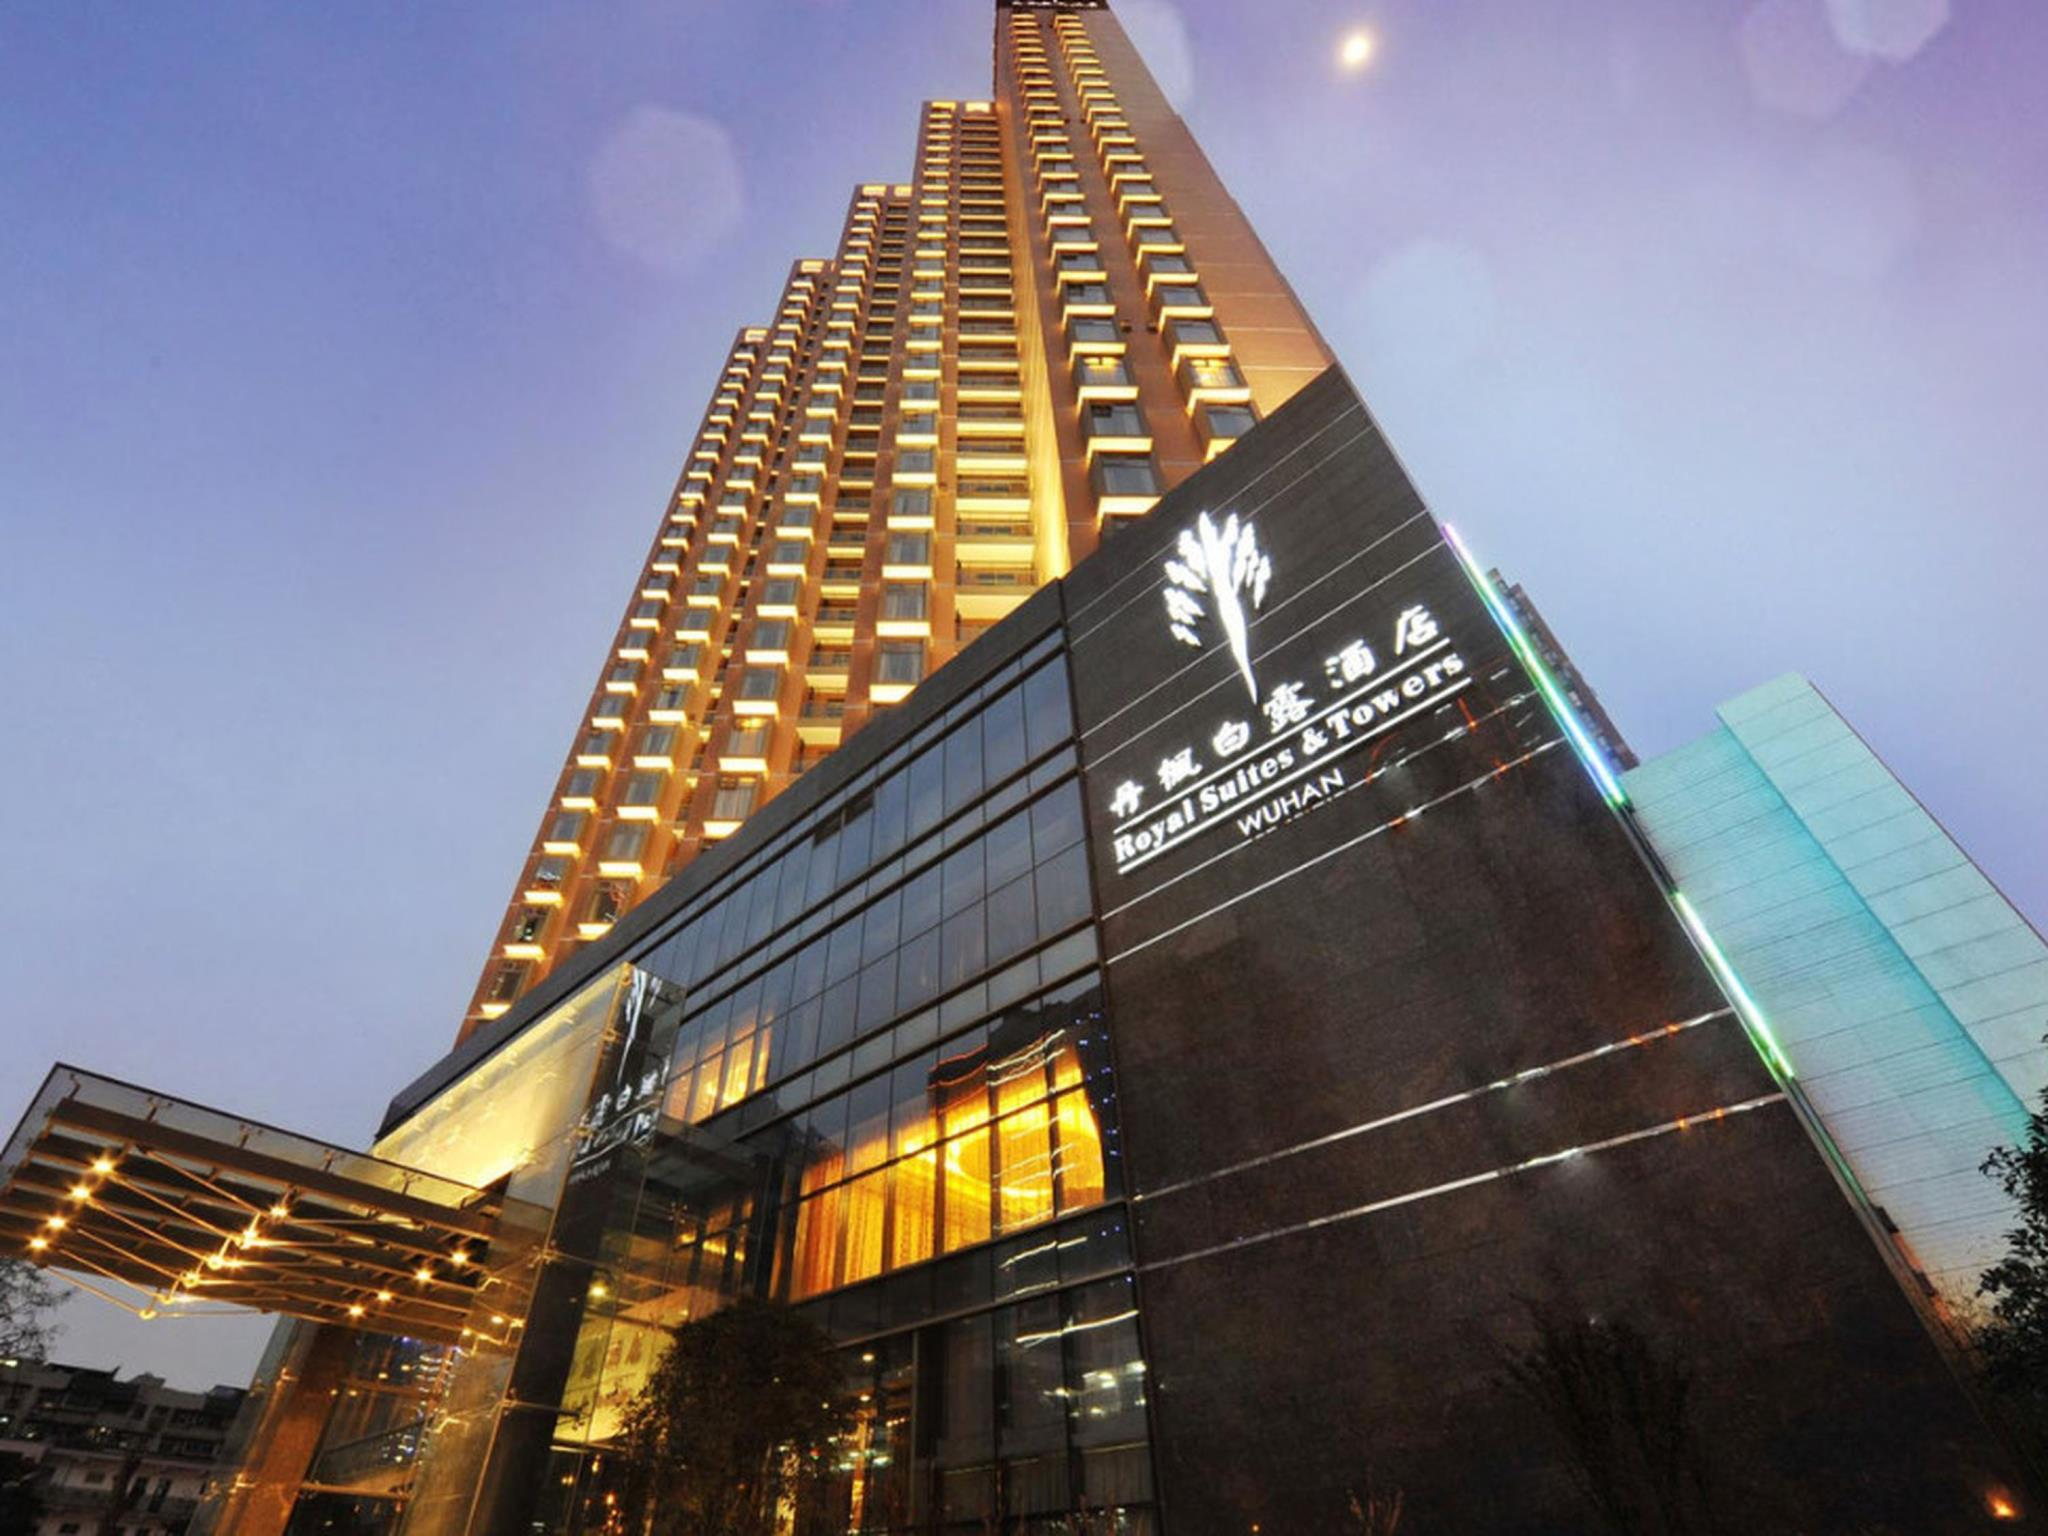 Wuhan Royal Suites And Towers Hotel